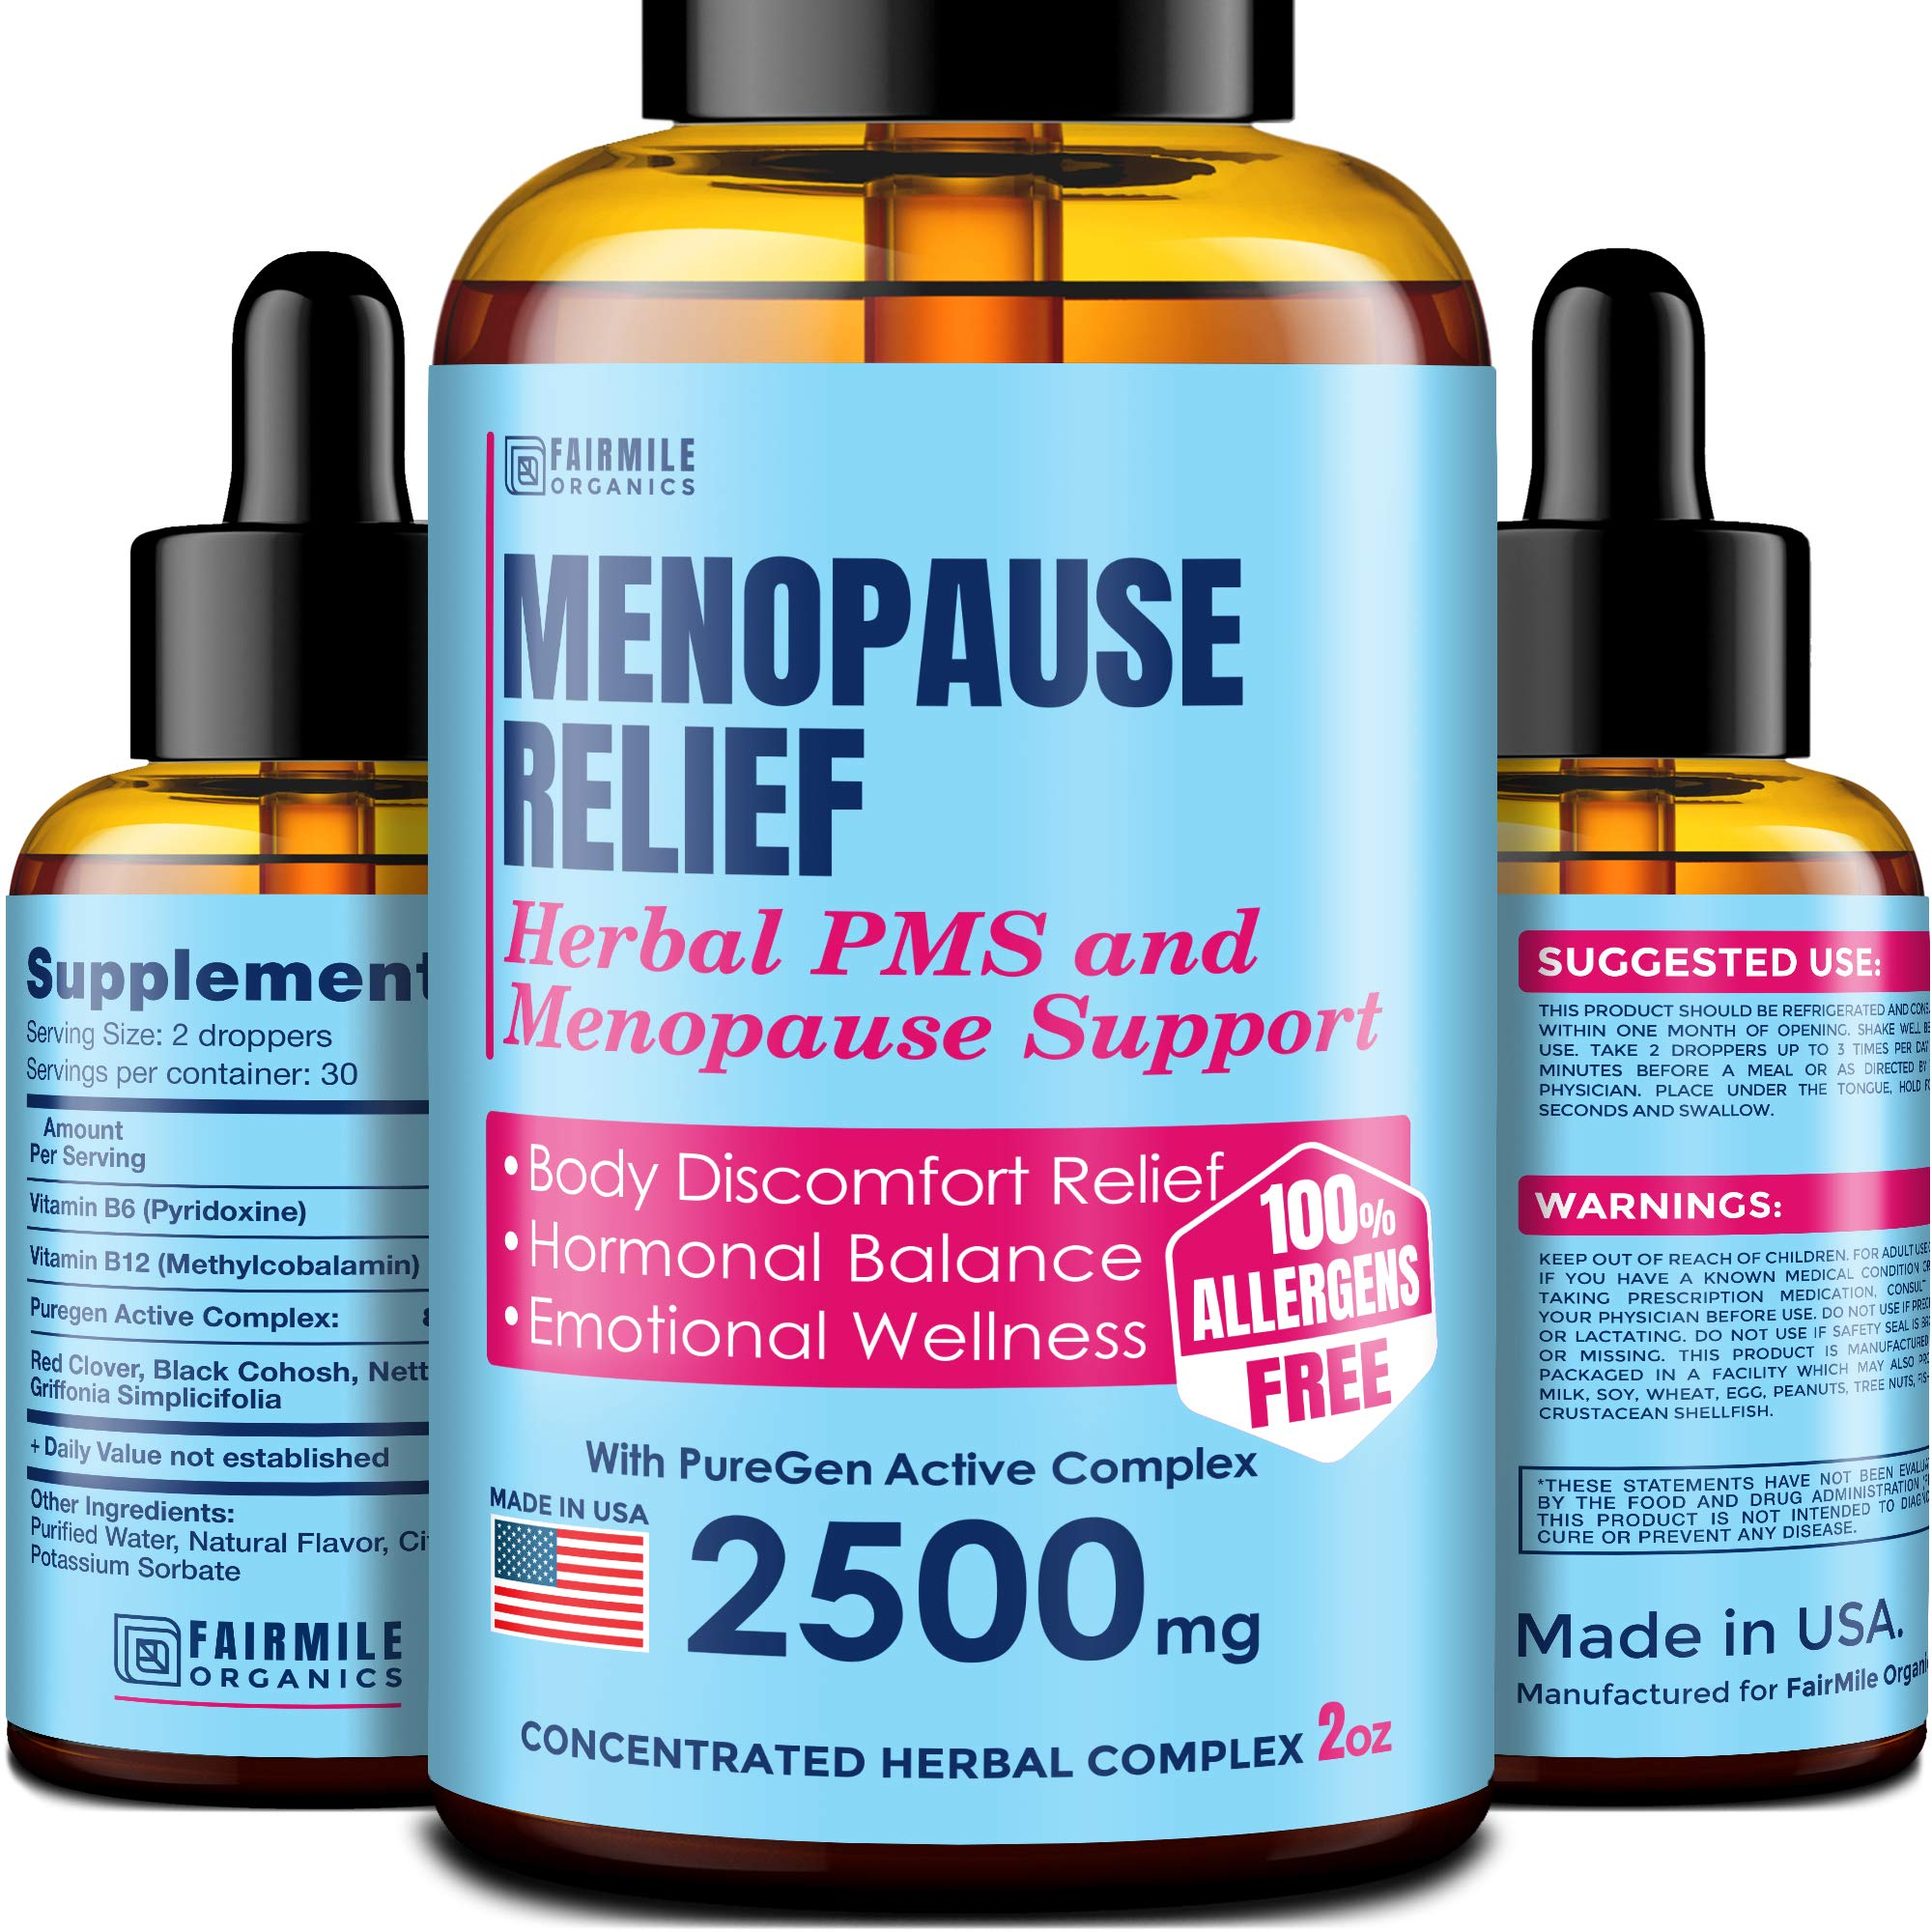 Menopause & PMS Natural Relief with Black Cohosh for Hot Flashes - Made in USA - Supports Healthy Weight Loss - Provides Hormone Balance for Women 100% Natural and Liquid for Best Absorption - 2 oz